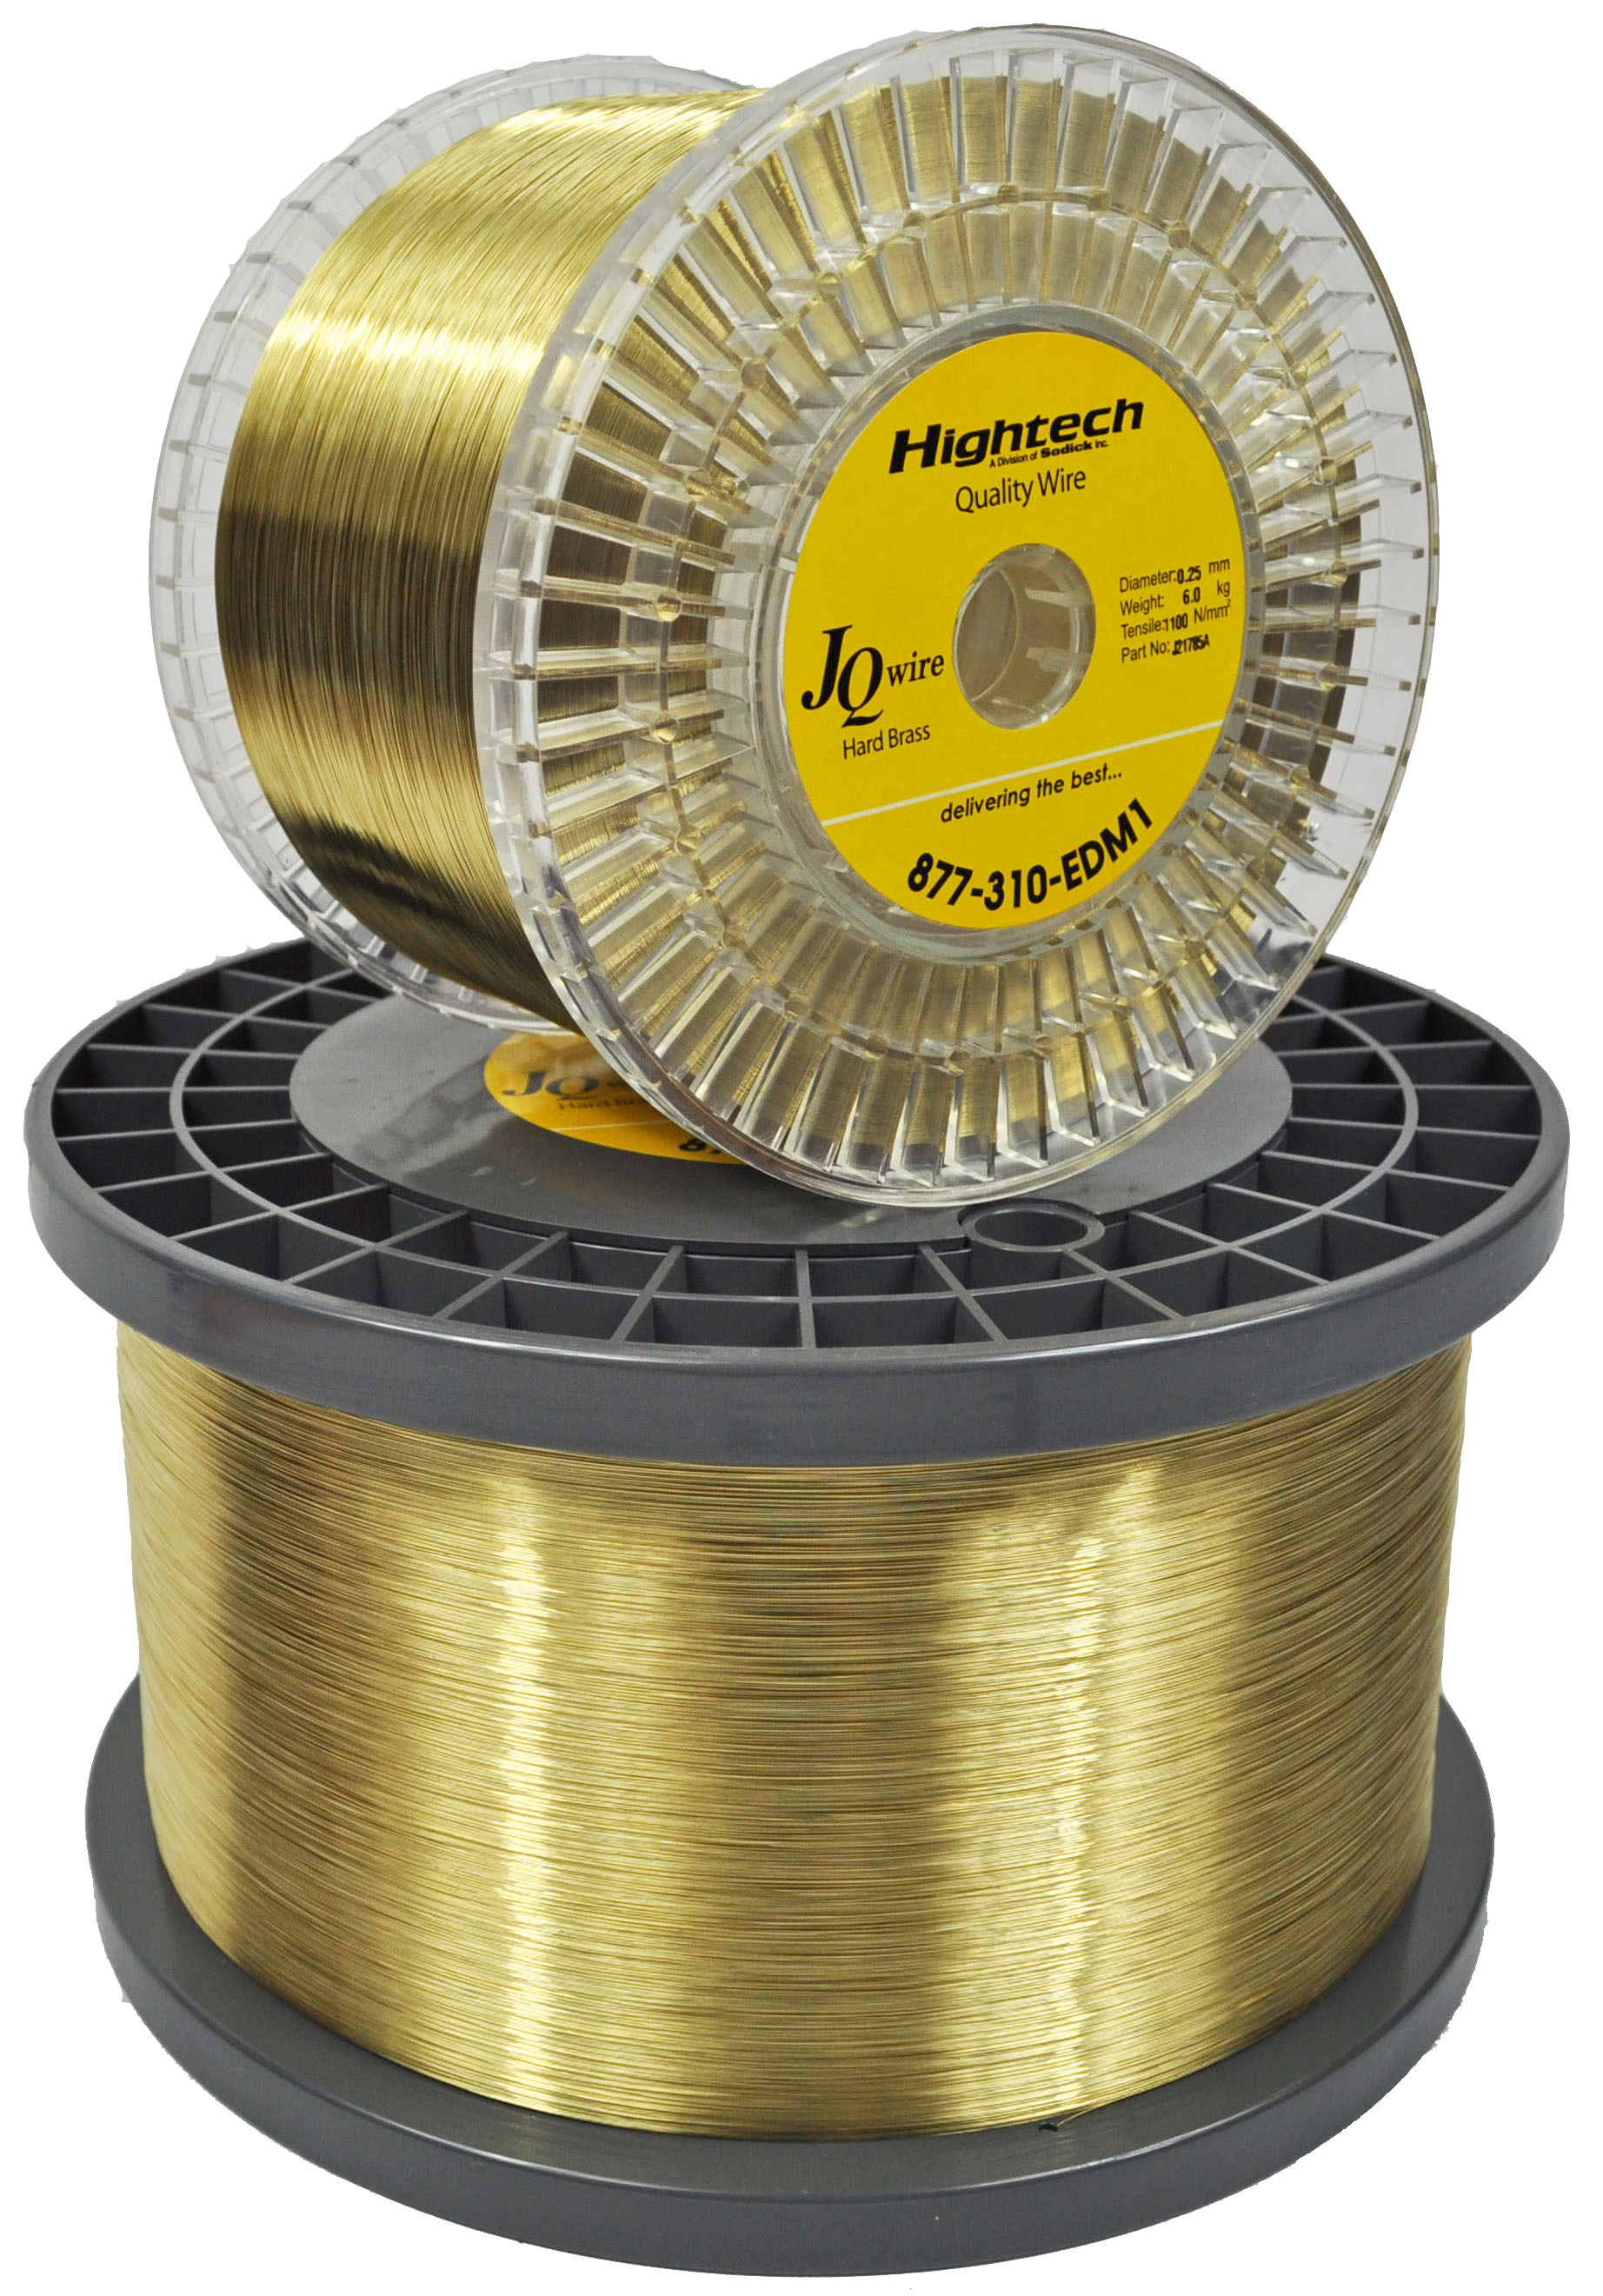 JQ Hard Brass Wire - Cost Efficient